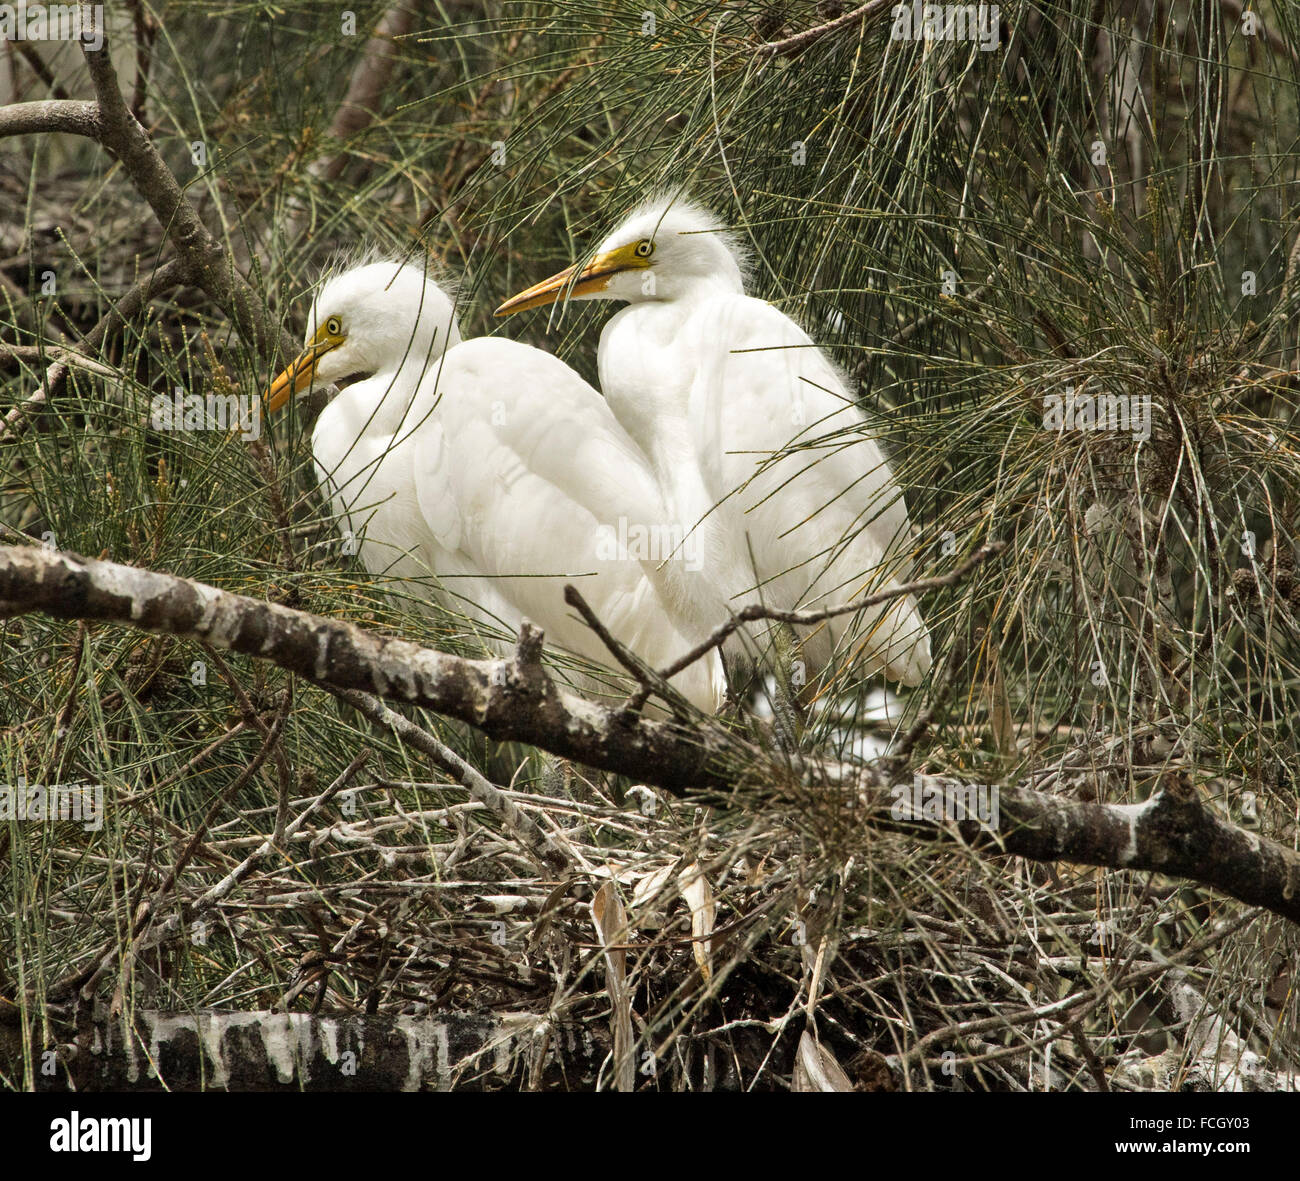 Two plumed / intermediate egret chicks, Ardea intermedia fledglings, on branch of tree with background of foliage Stock Photo